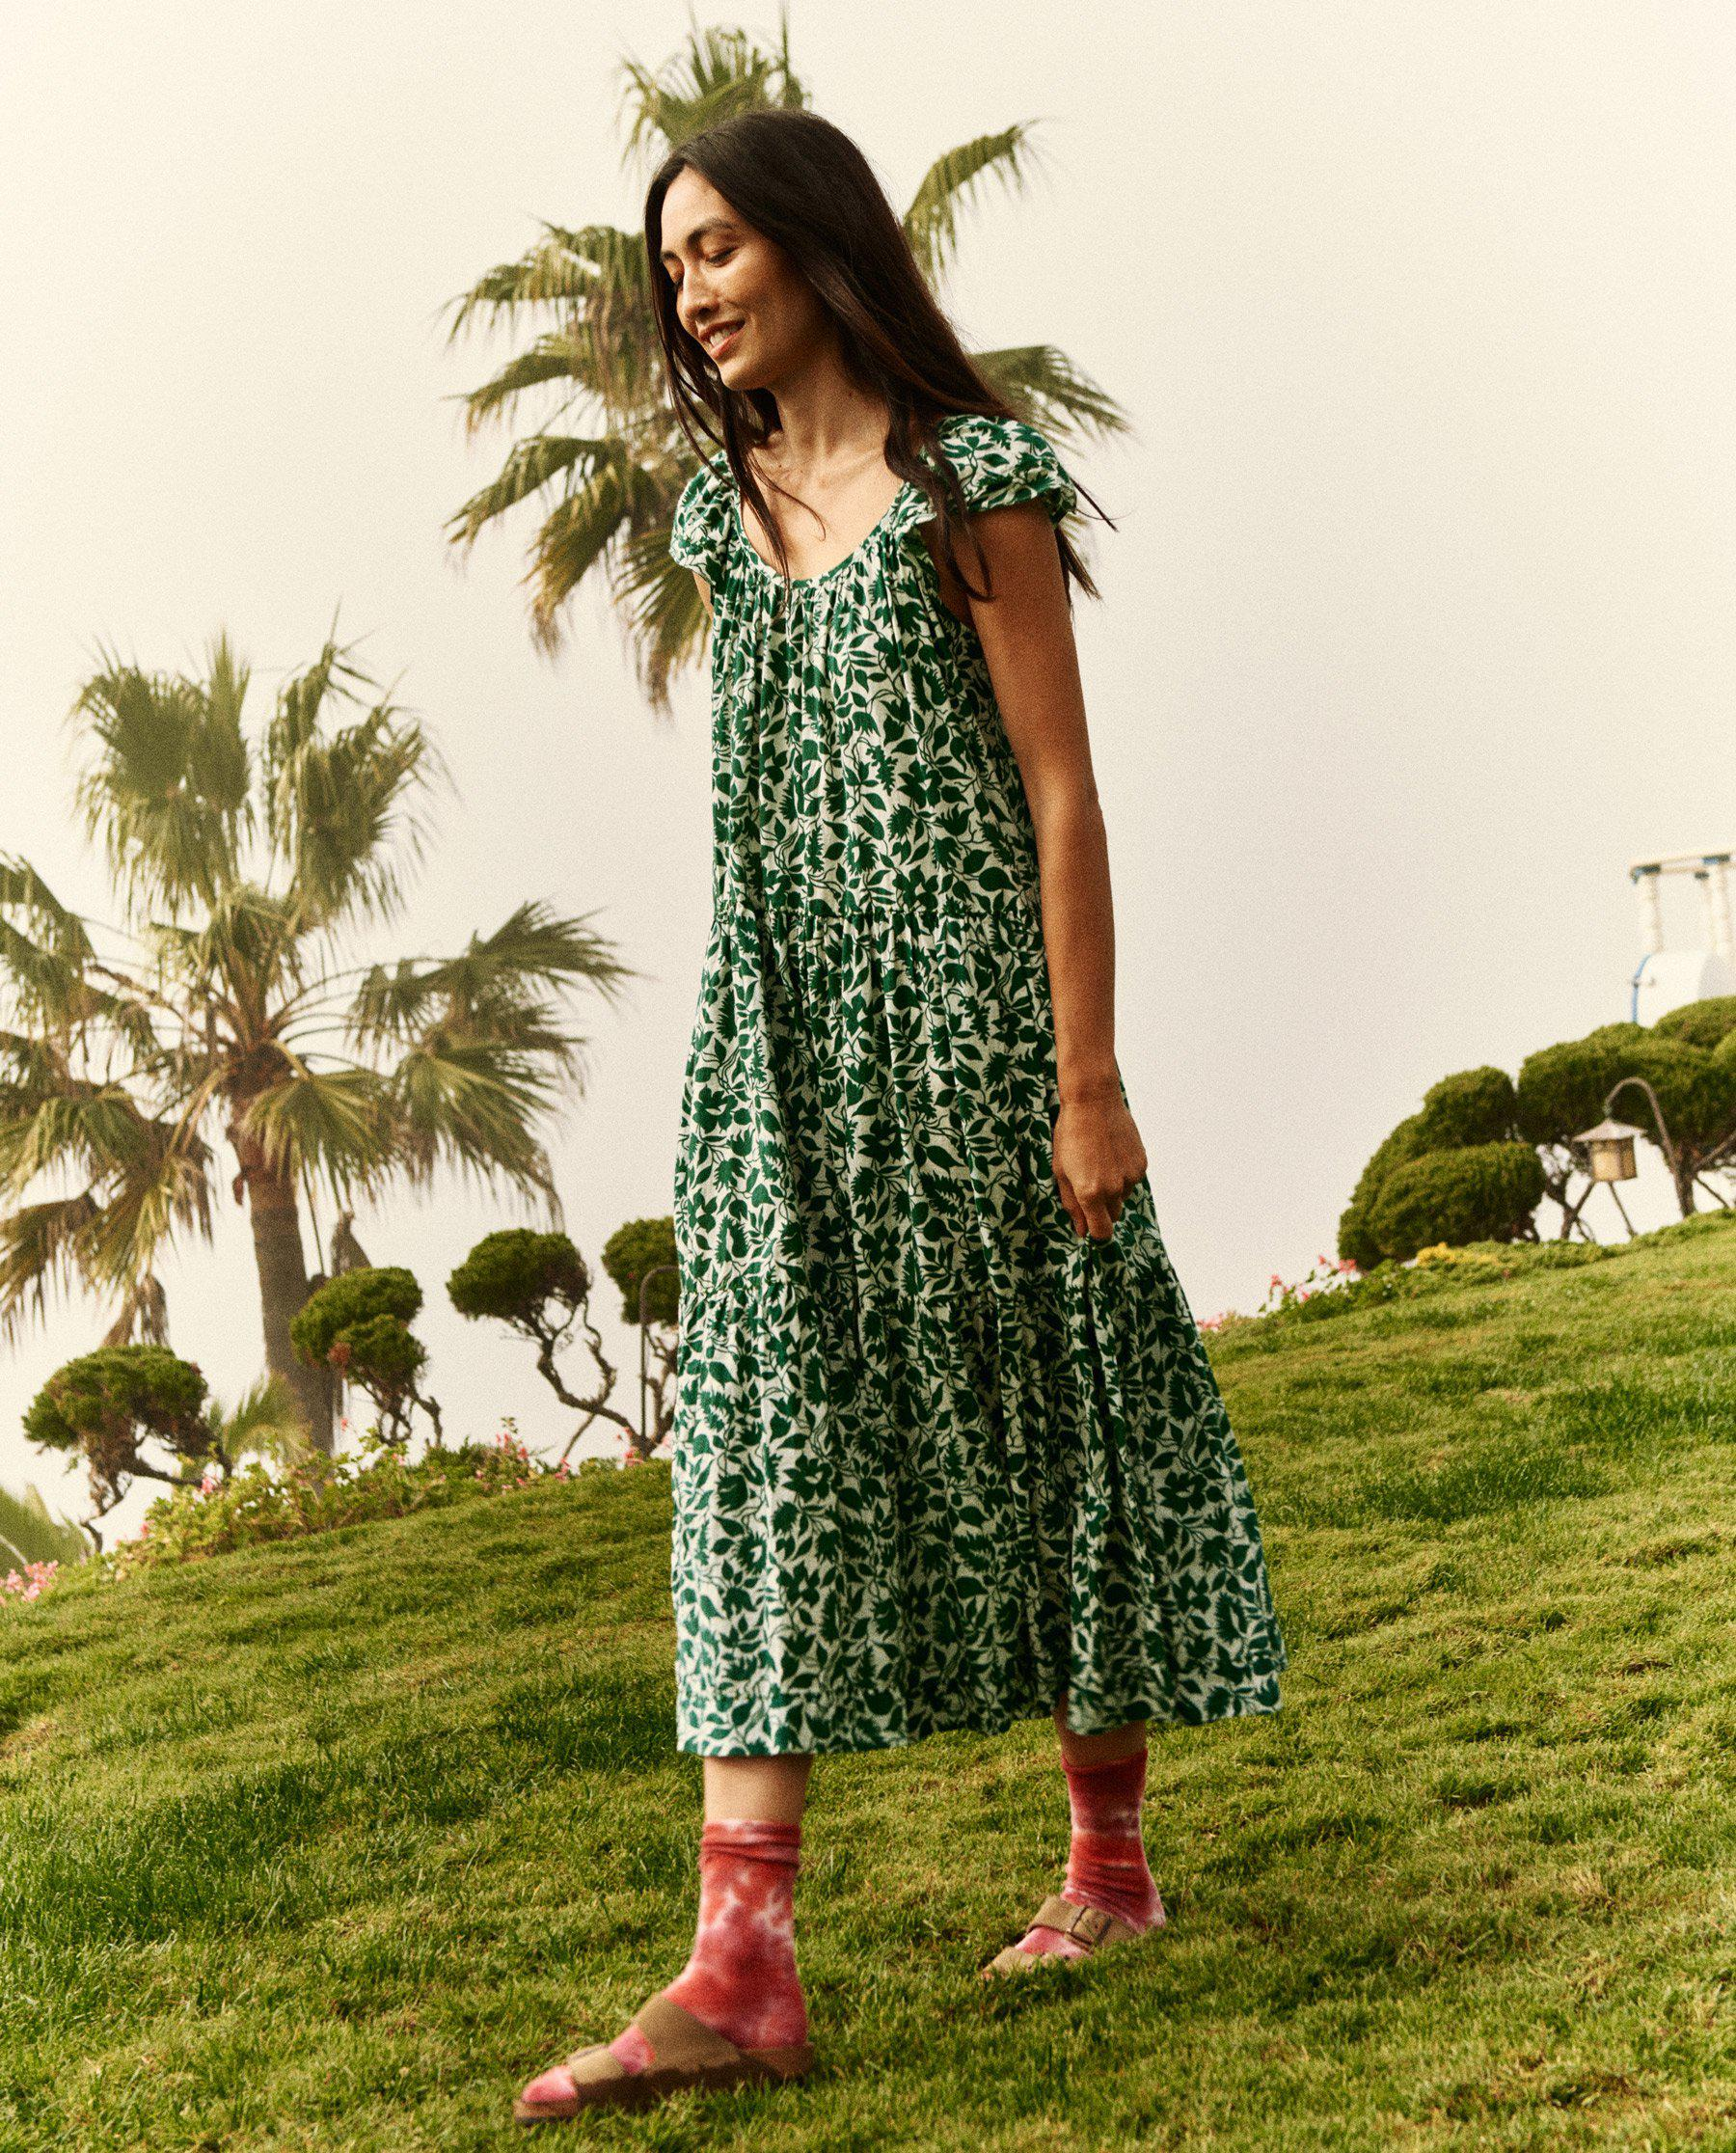 The Whip Stitched Plumeria Dress. -- Palm Leaf Blossom Floral